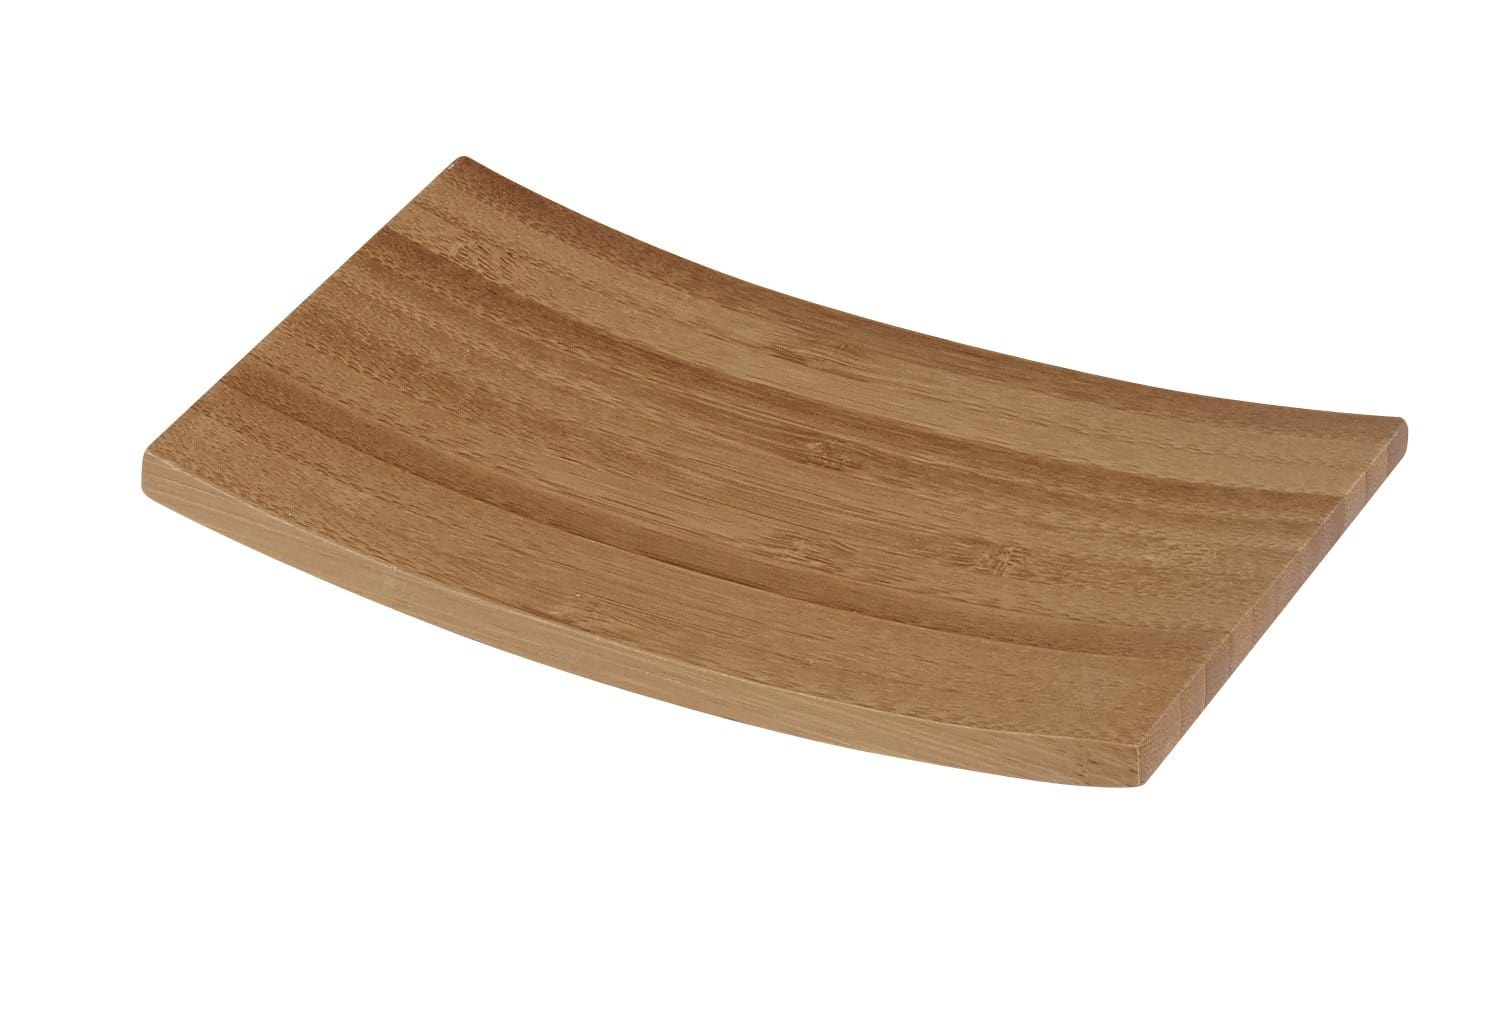 Zen Collection Soap Dish - Bamboo